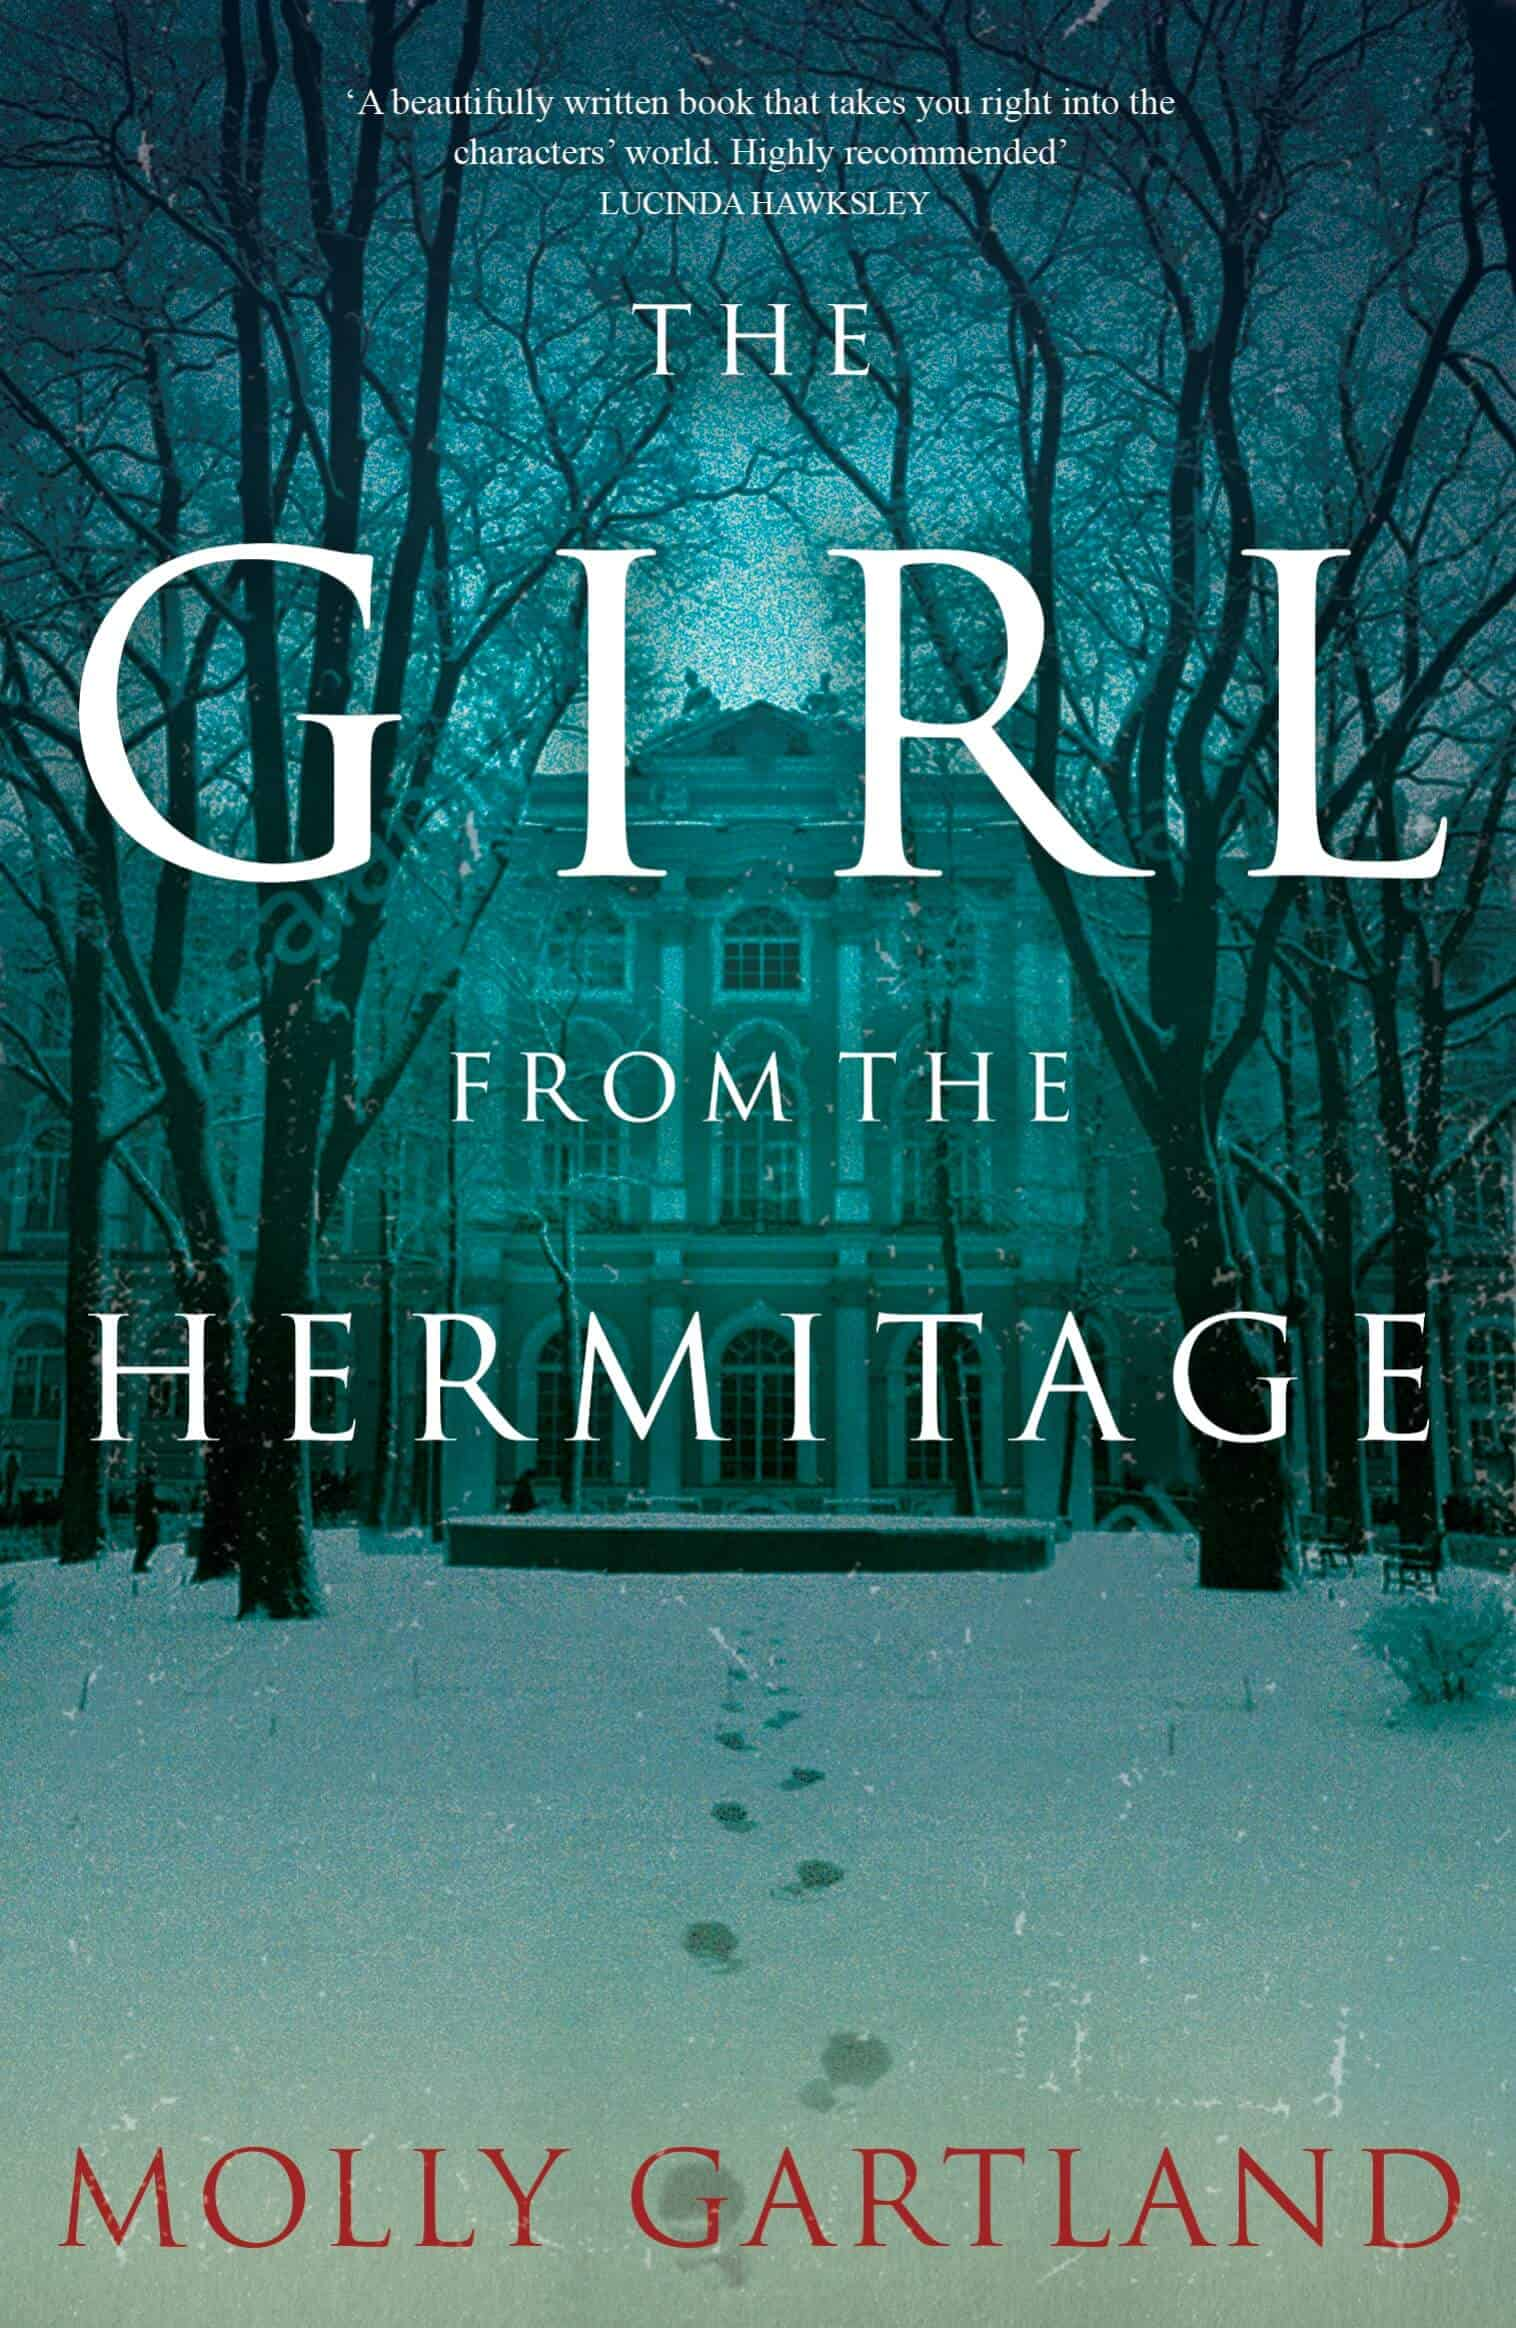 The Girl From The Hermitage by Molly Gartland - Book Review